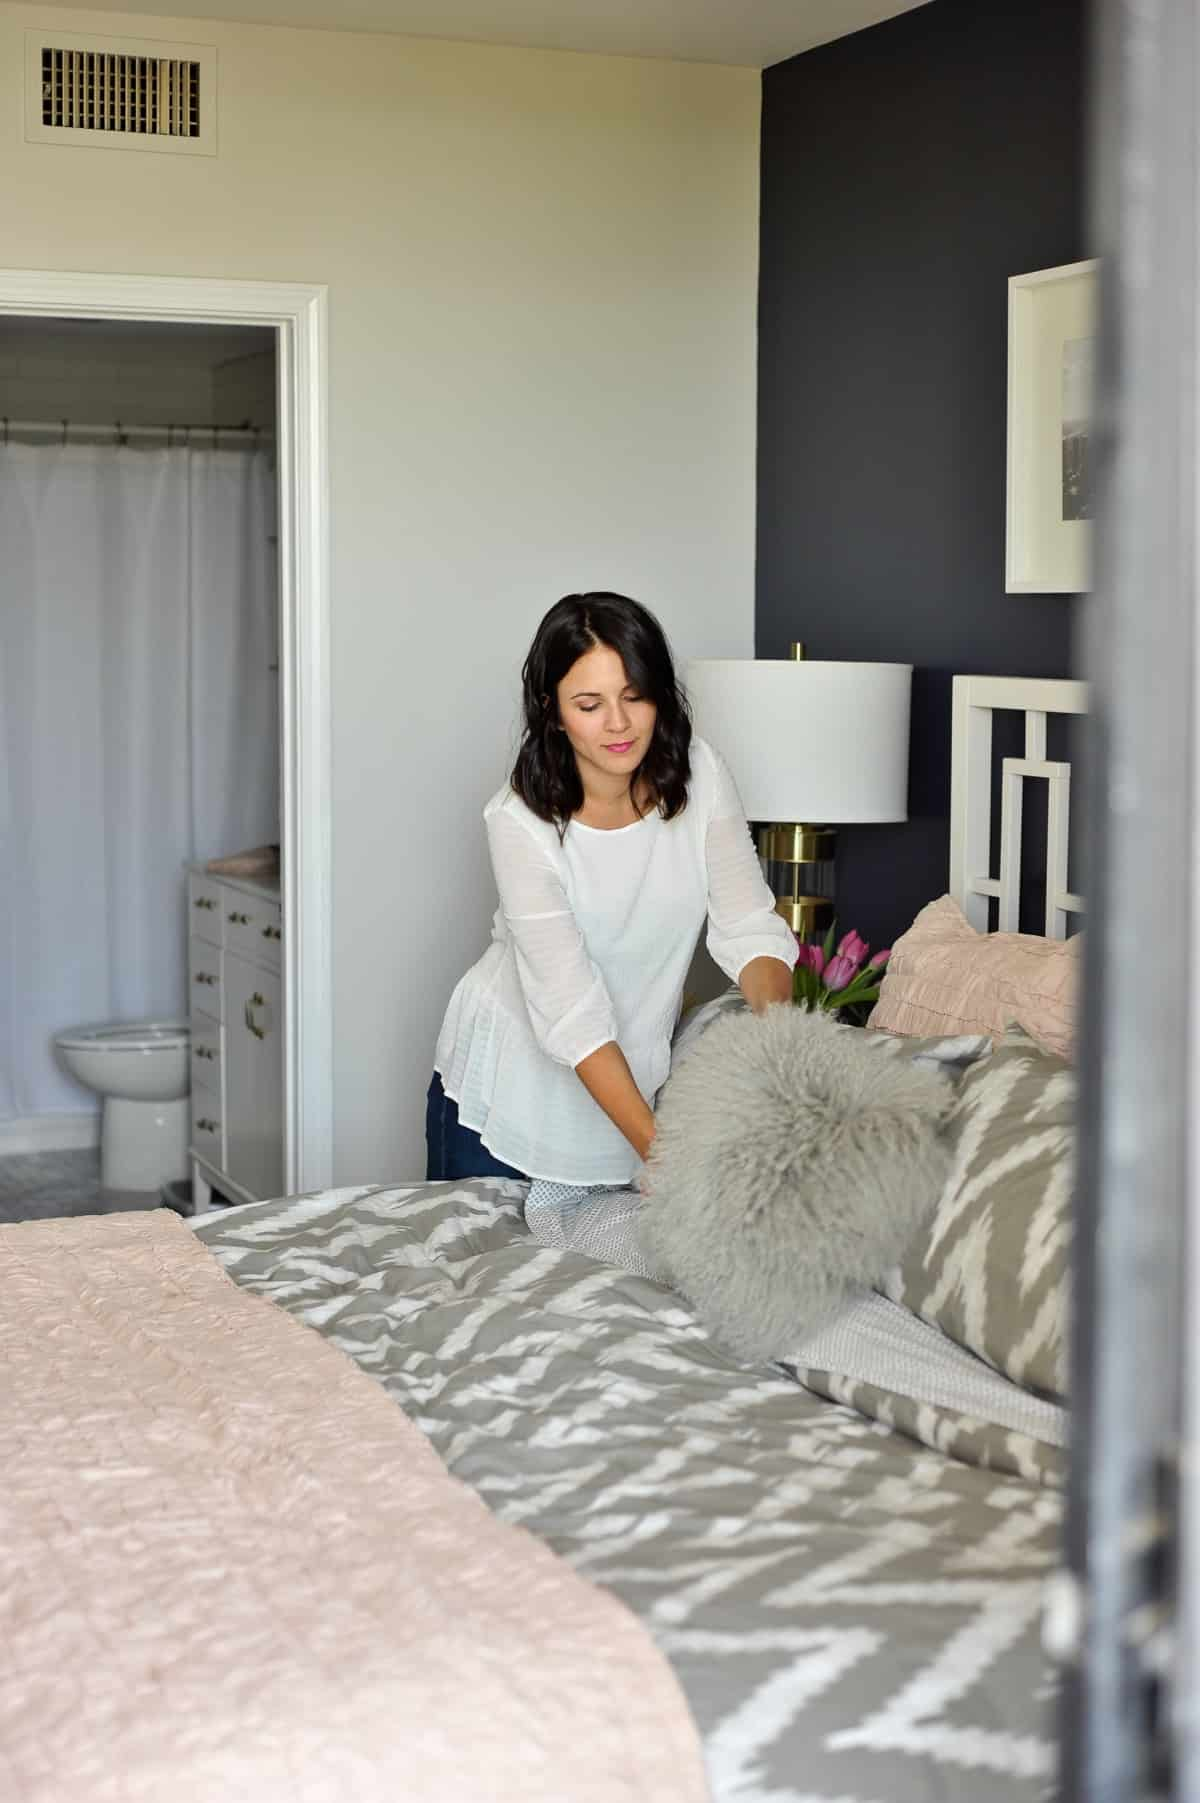 Kohl's spring updates to the home with Lauren Conrad items - My Style Vita - @mystylevita - 5